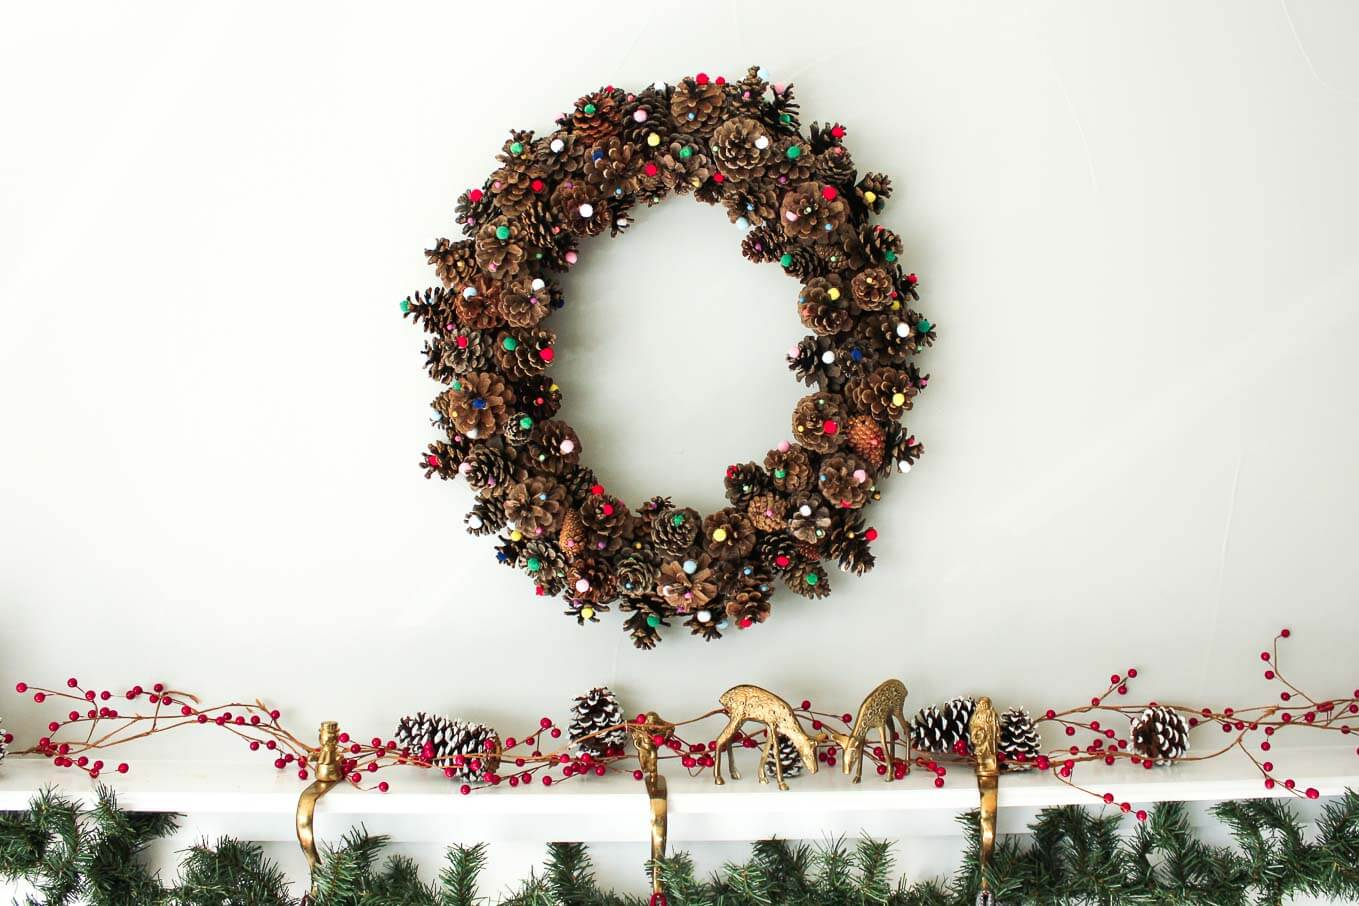 This DIY pinecone wreath is made with adorable little pom poms and costs less than $6 total! Perfect for the Christmas season and beyond. Click to view the full tutorial. | MakeAndDoCrew.com